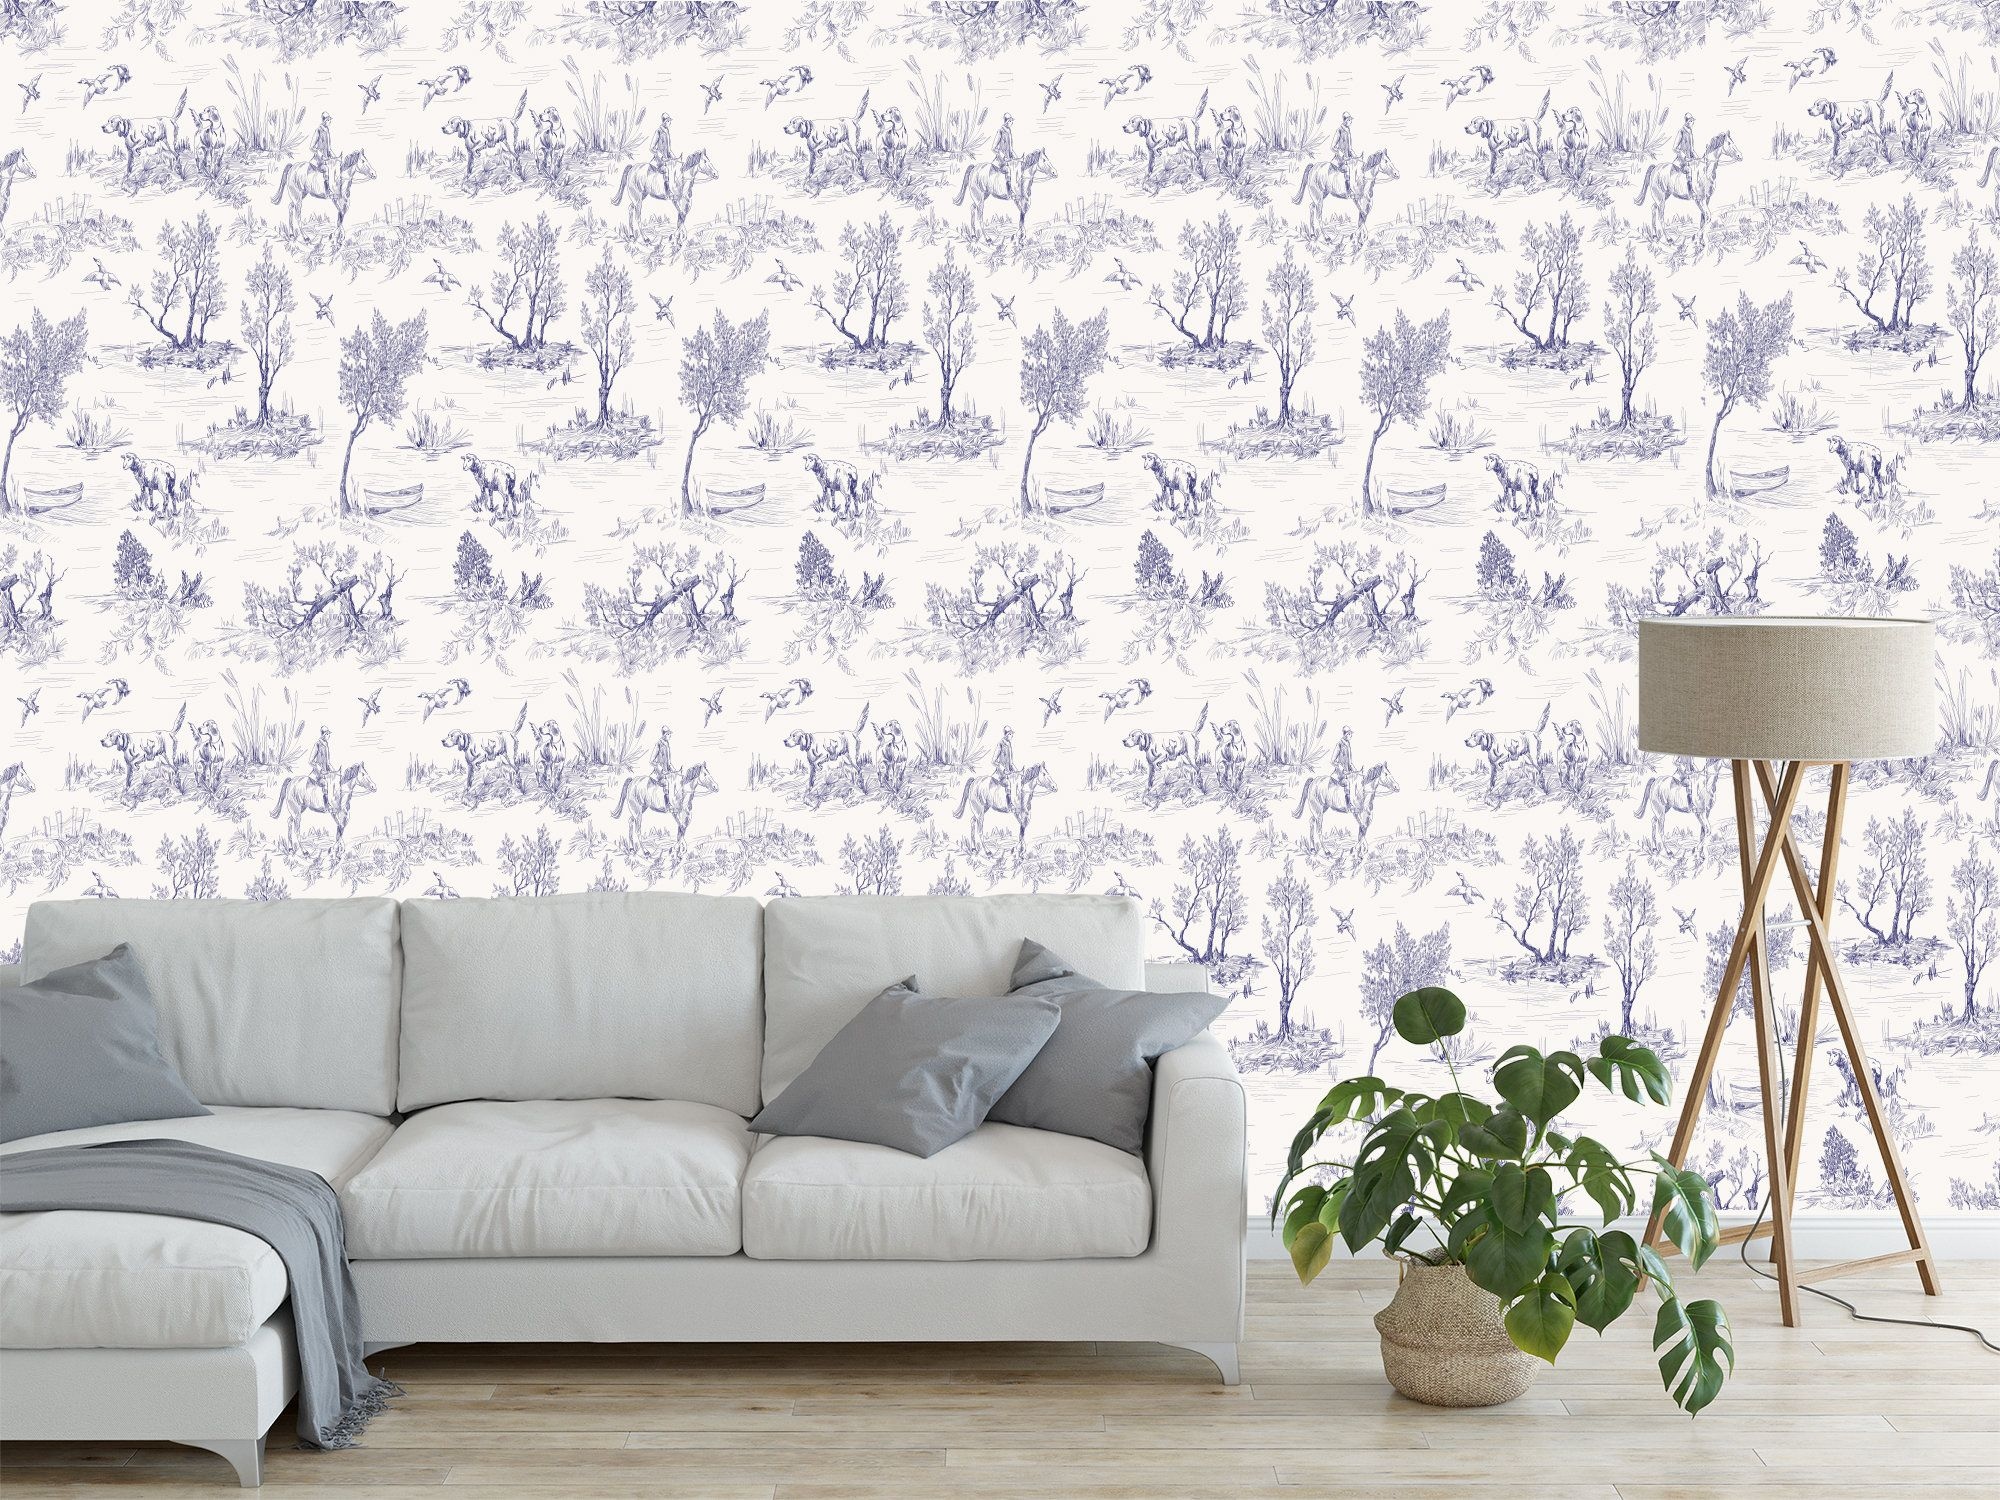 Peel And Stick Wallpaper Self Adhesive Wallpaper Removable Wallpaper Wall Decor Toile Blue In 2020 Wallpaper Walls Decor Wall Wallpaper Peel And Stick Wallpaper